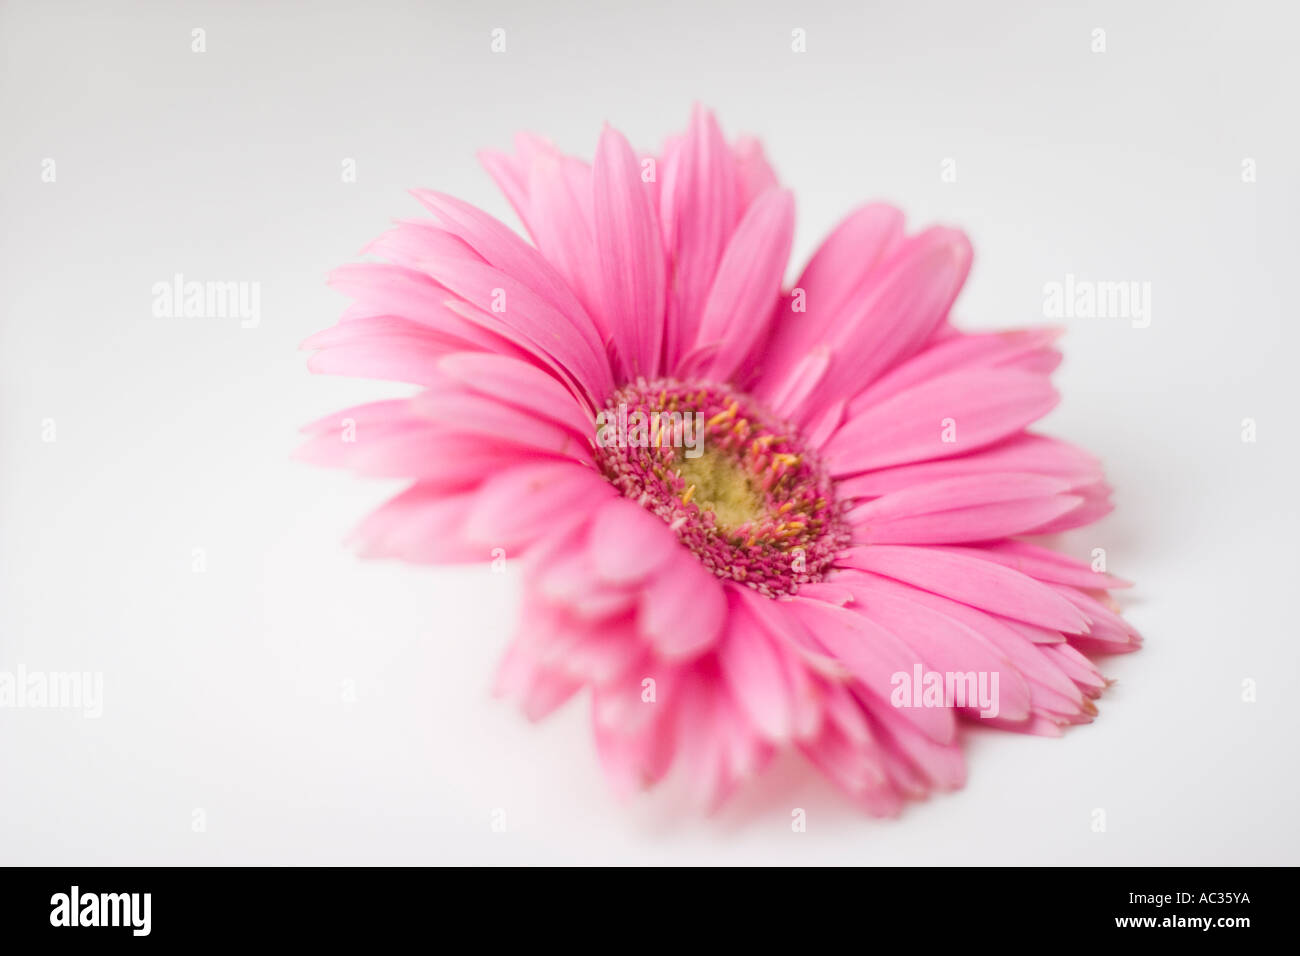 Pink gerbera daisy flower on a white background Stock Photo